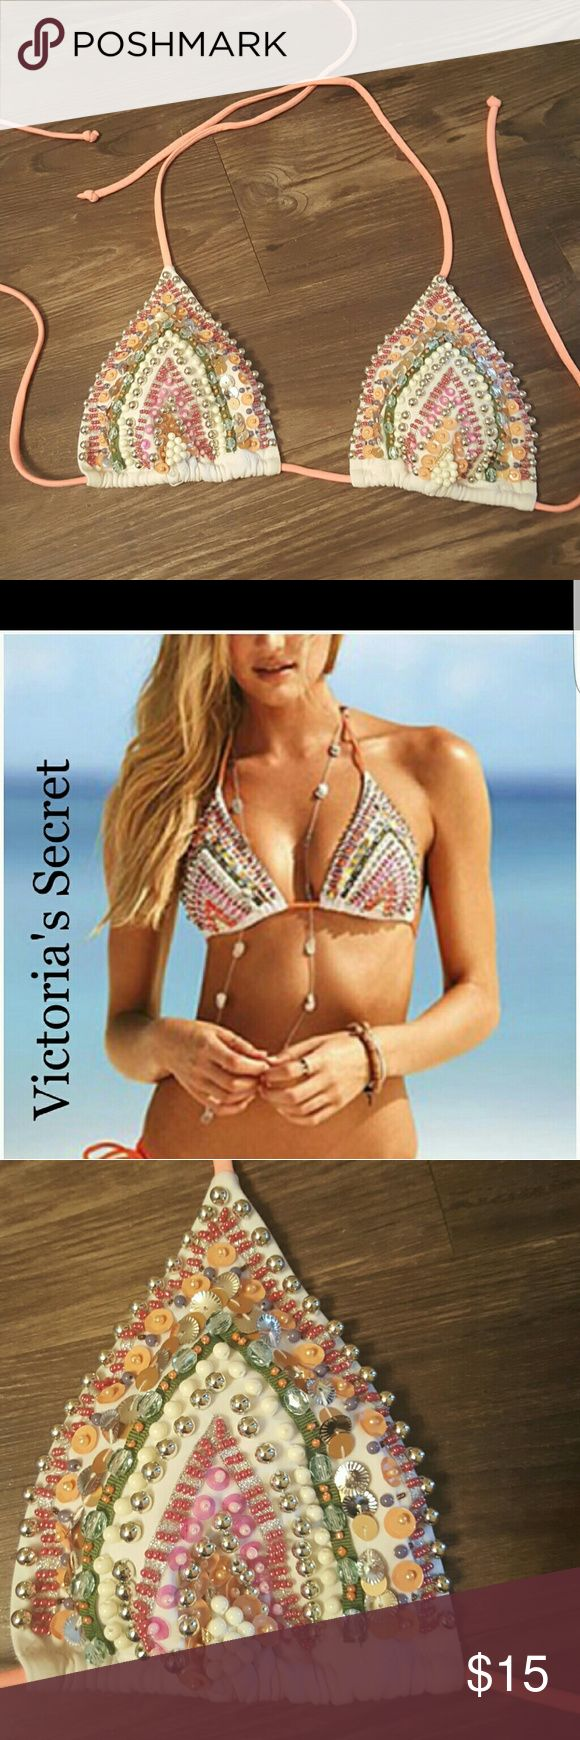 Beaded VS bikini top! Adorable,, flashy bikini top perfect for the upcoming summer!! Top has all beads intact. No stains/signs of wear! Straps are an oragngey/peach color. Size medium. Any questions?! Please ask! :) bundle to $ave!!! Victoria's Secret Swim